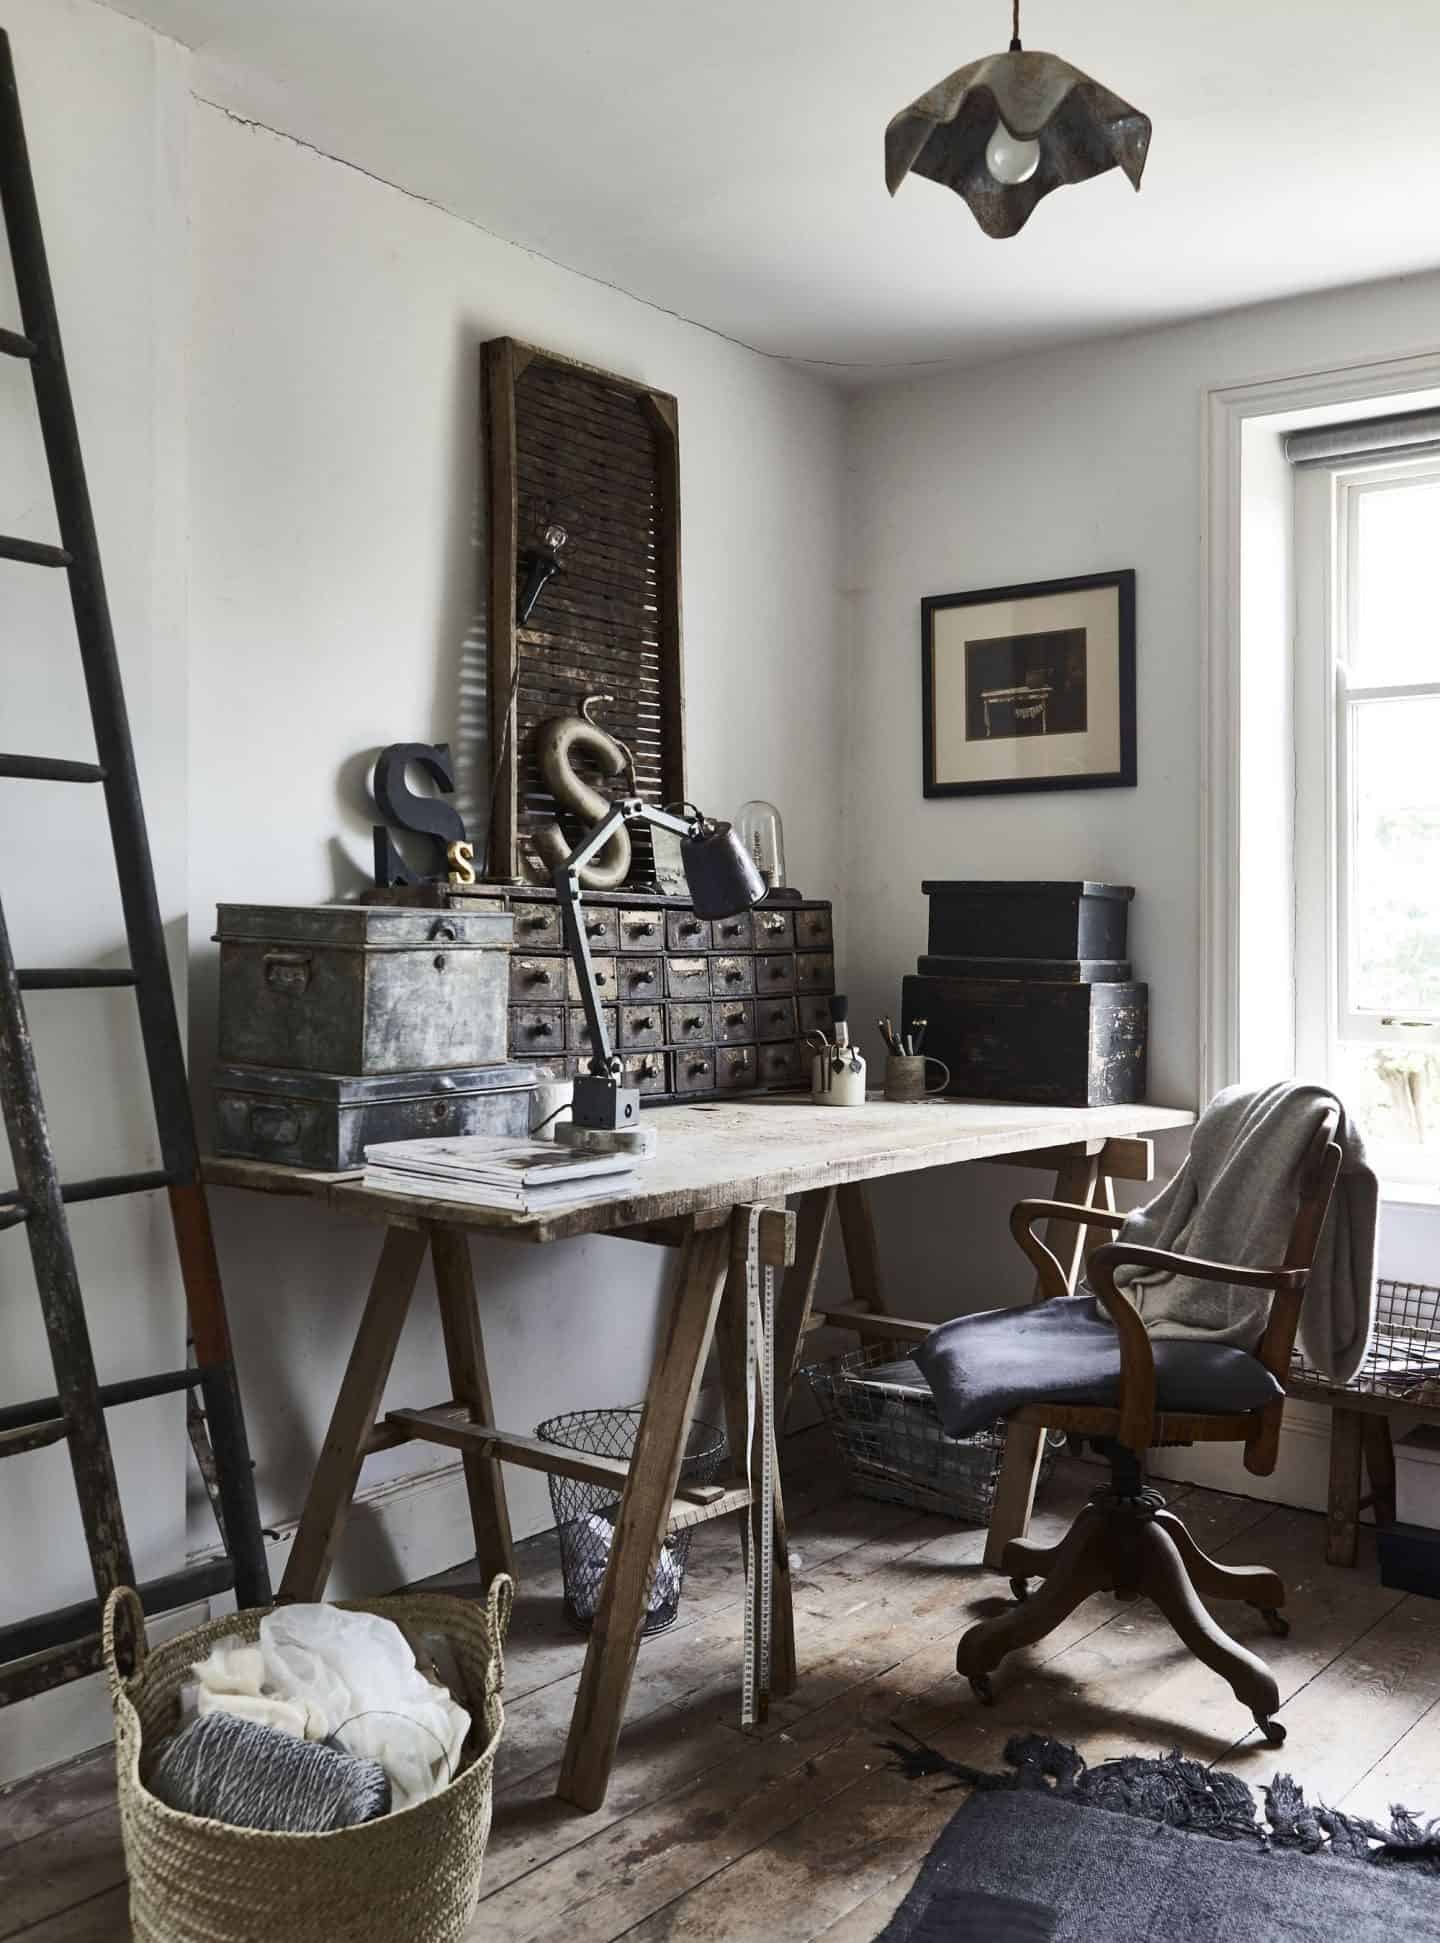 Natural Living Style by Selina Lake. An industrial style office featuring a trestle table, metals storage boxes, large typographic decorative items and an old wooden chair.